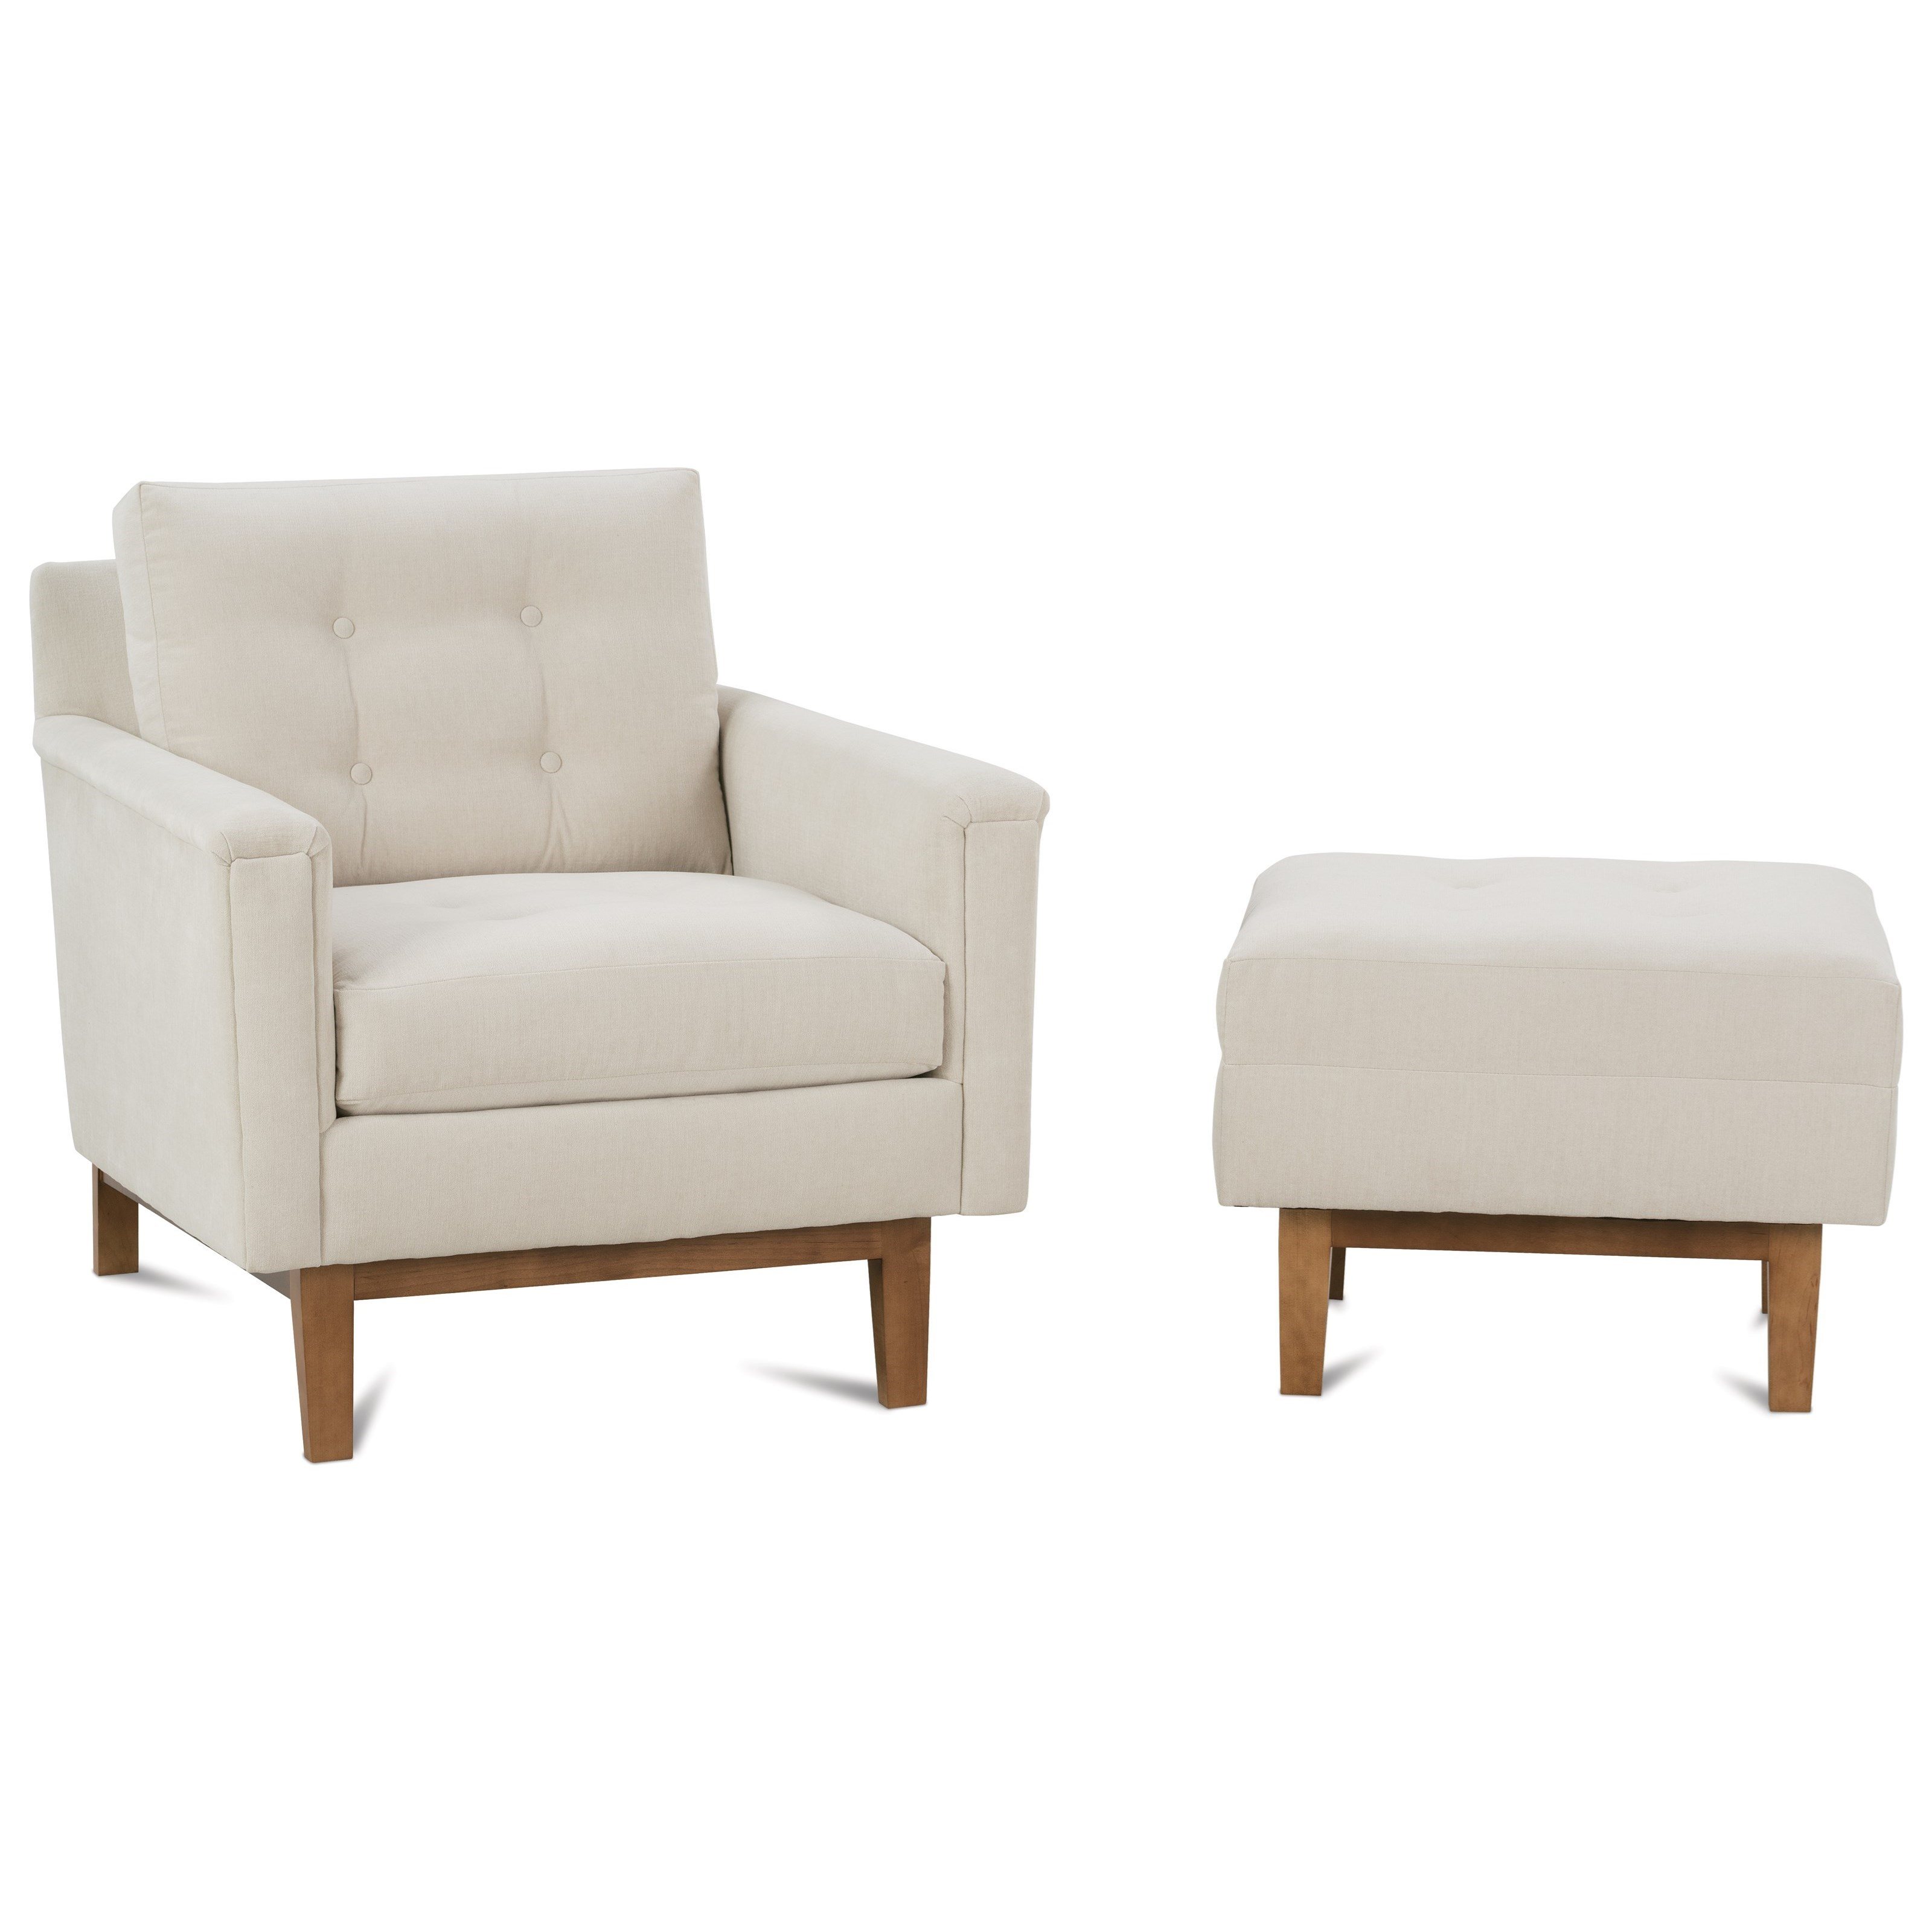 Ethan  Chair and Ottoman Set by Rowe at Baer's Furniture